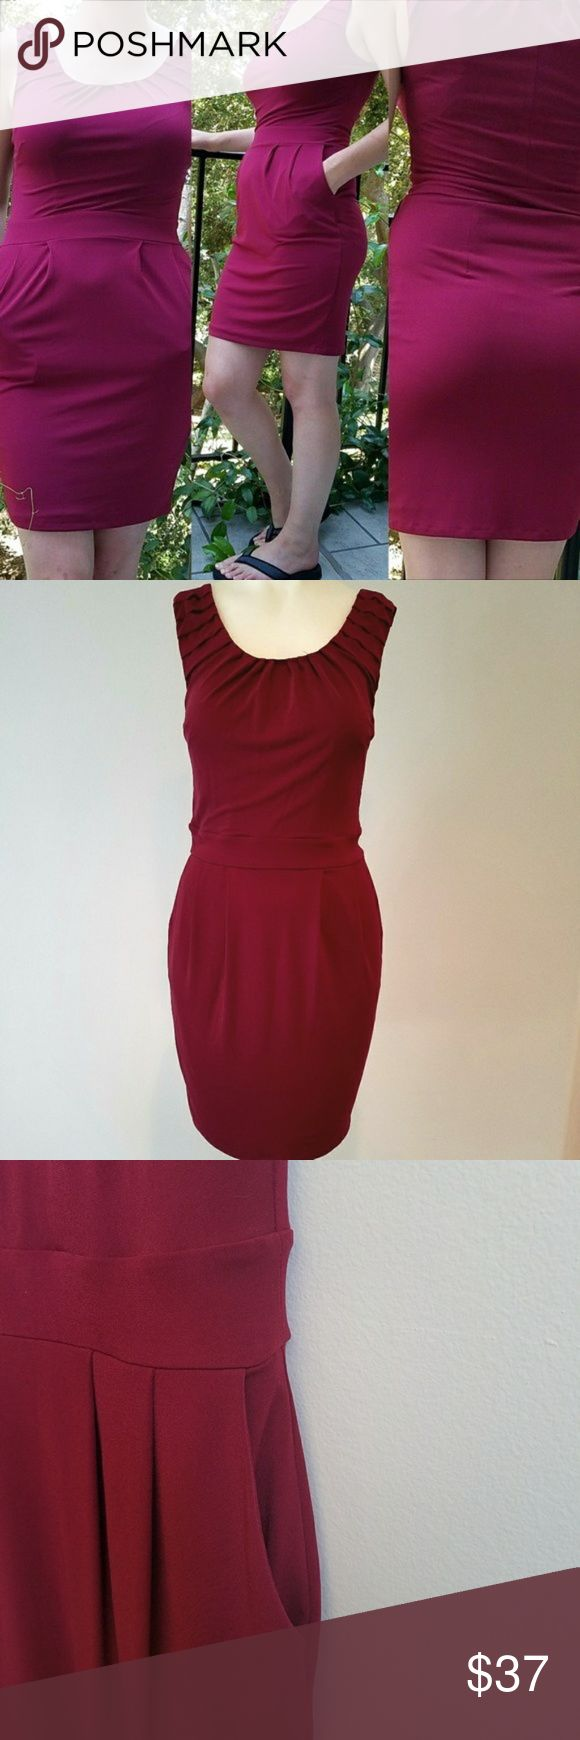 "The Limited Burgundy Mini Tank Dress. The Limited Burgundy Knee length dress with hidden pockets. No flaws, length 35"" long, Waist 12"", Bust 13"" 95% polyester, 5% spandex, 100% nylon. The Limited Dresses Midi #tankdress"